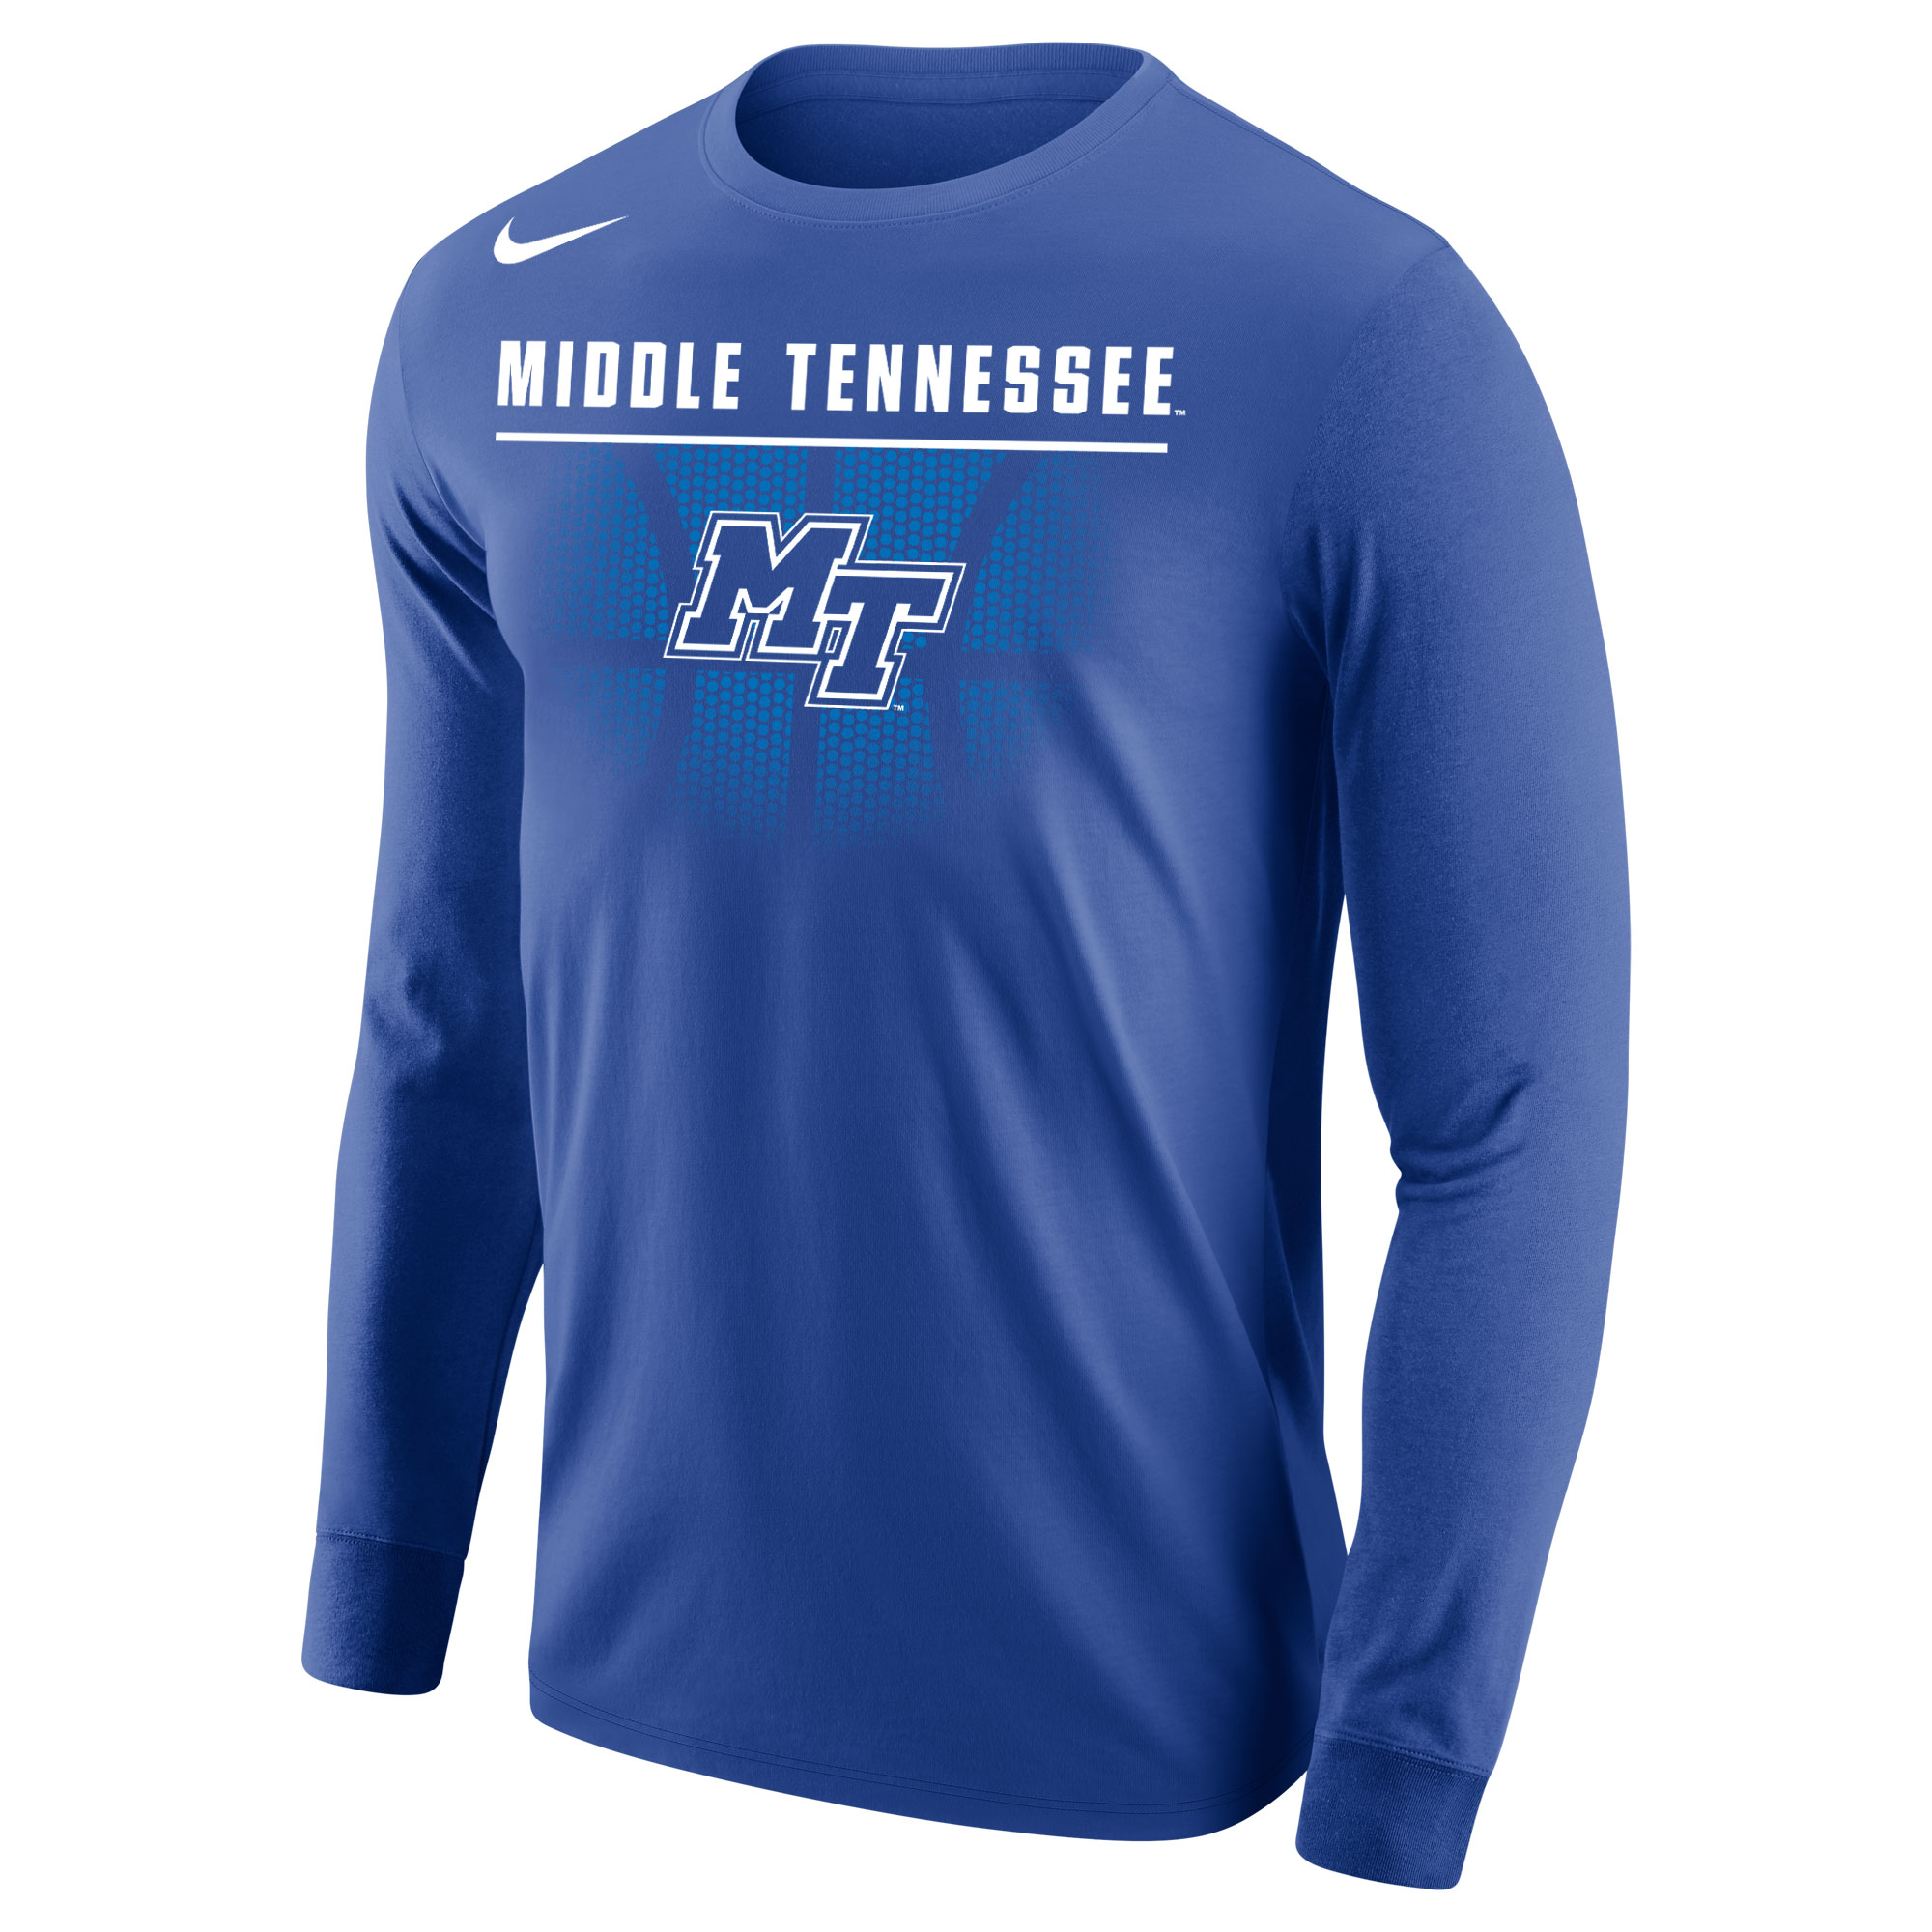 Middle Tennessee w/ MT Logo Basketball Nike® Long Sleeve Shirt